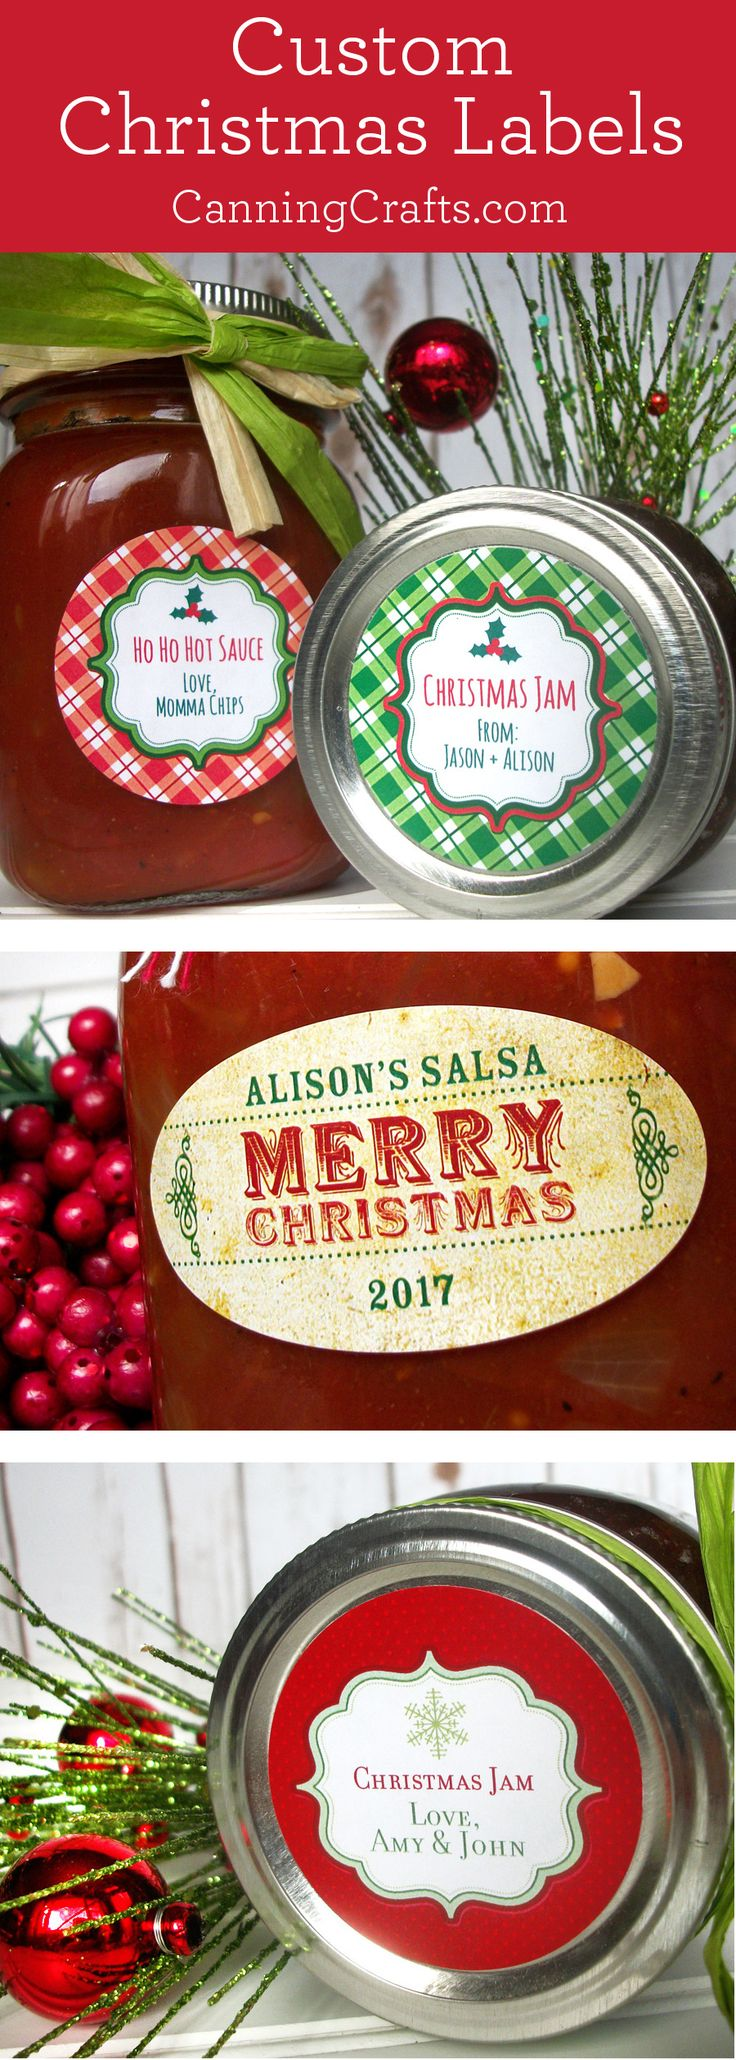 Custom Christmas canning jar labels stickers for home-preserved food in mason jars CanningCrafts.com #canning #foodpreservation